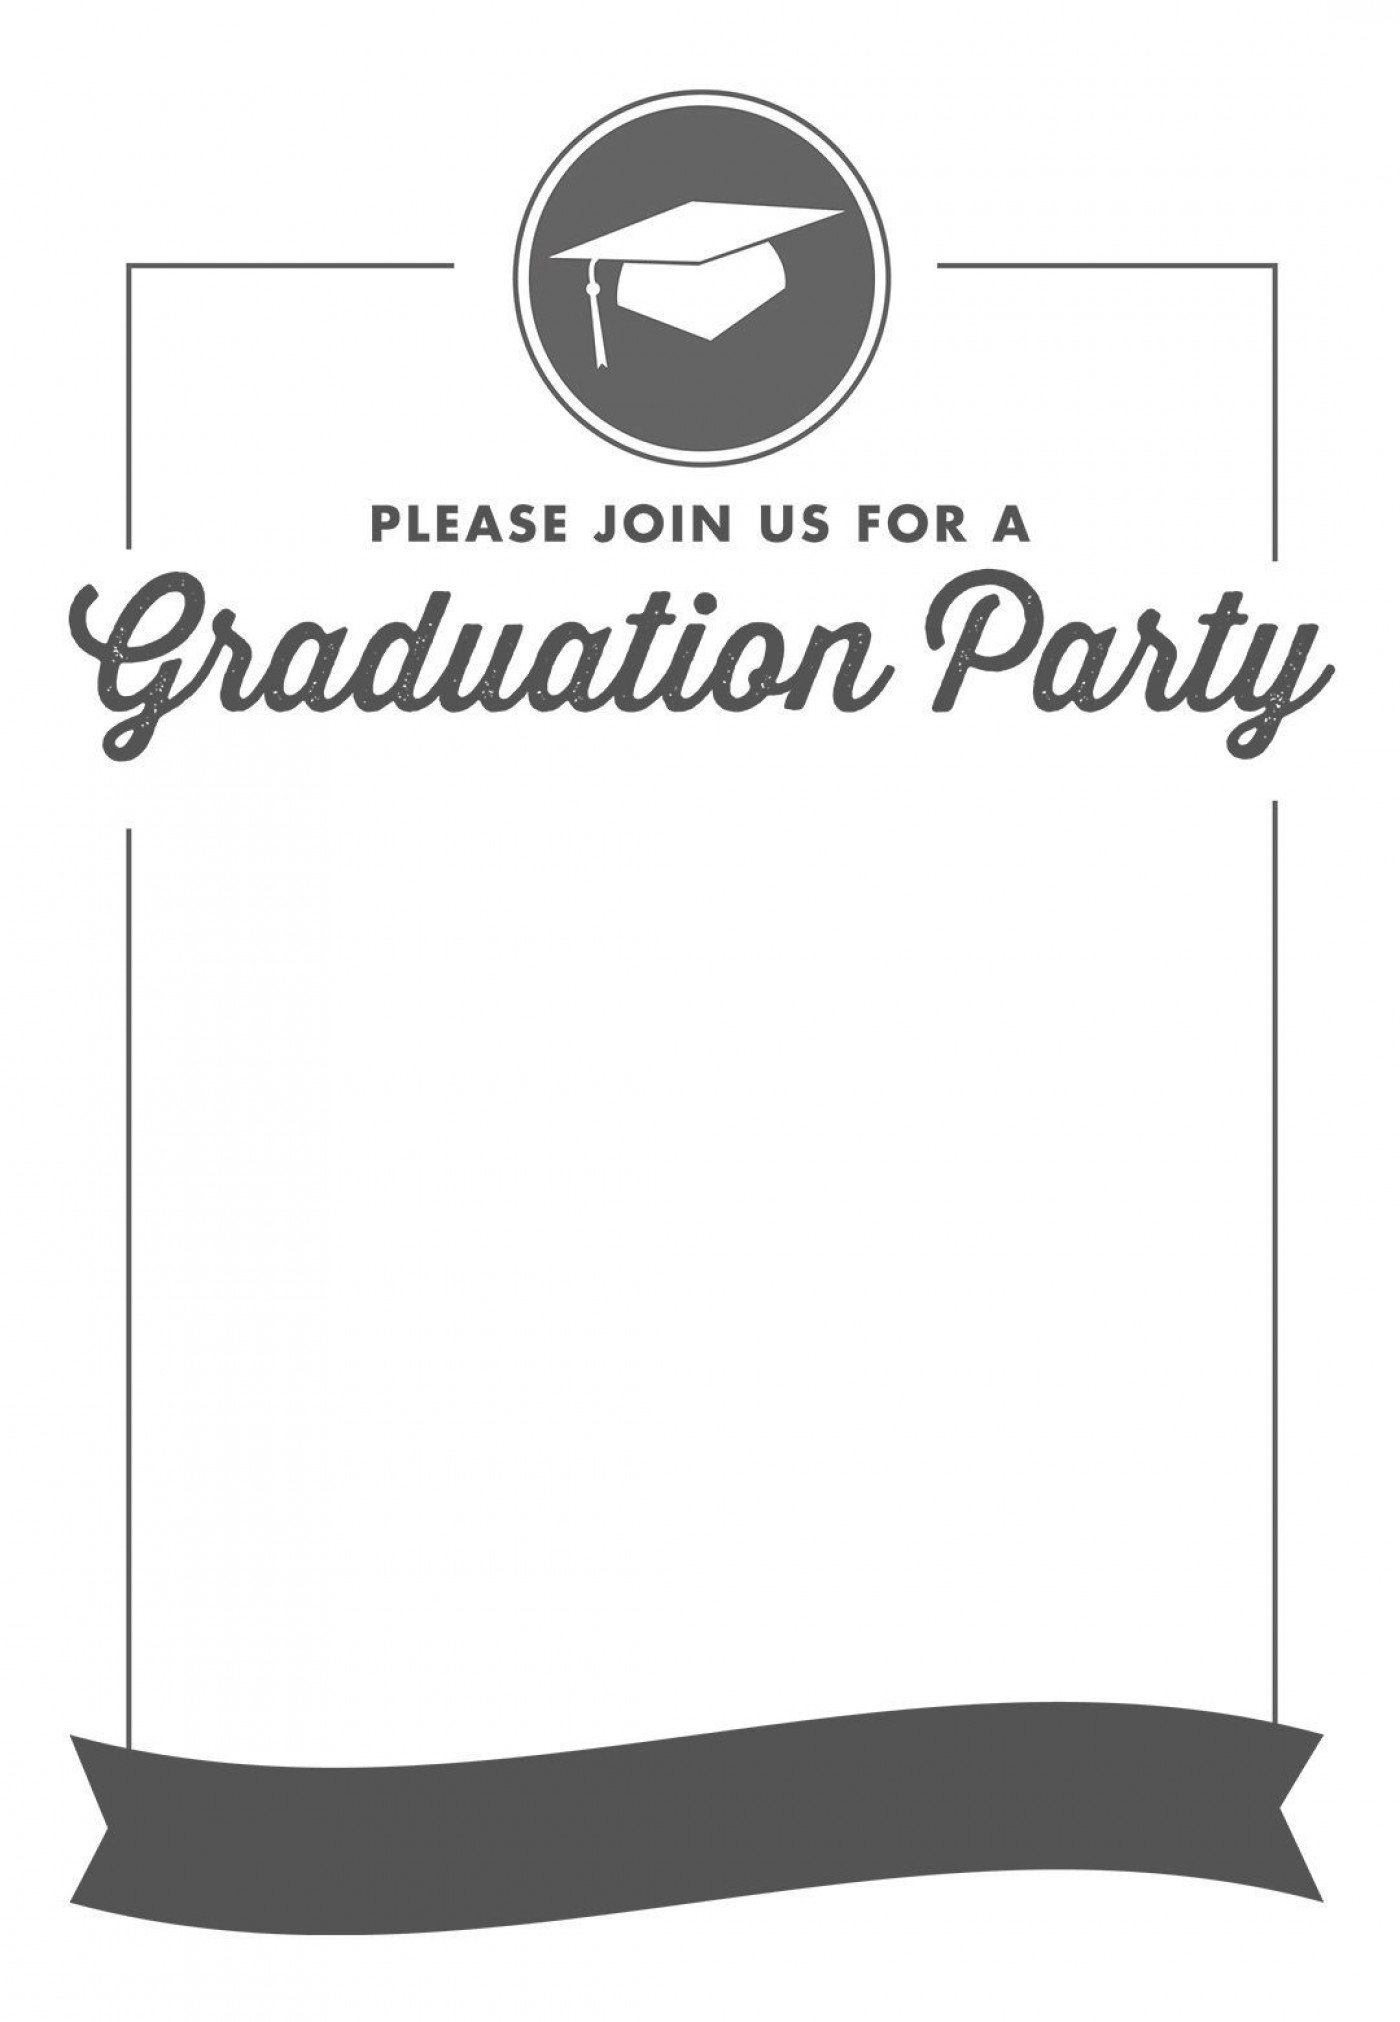 002 Unbelievable Free Graduation Invitation Template Printable High Resolution  Party For Word Preschool1400